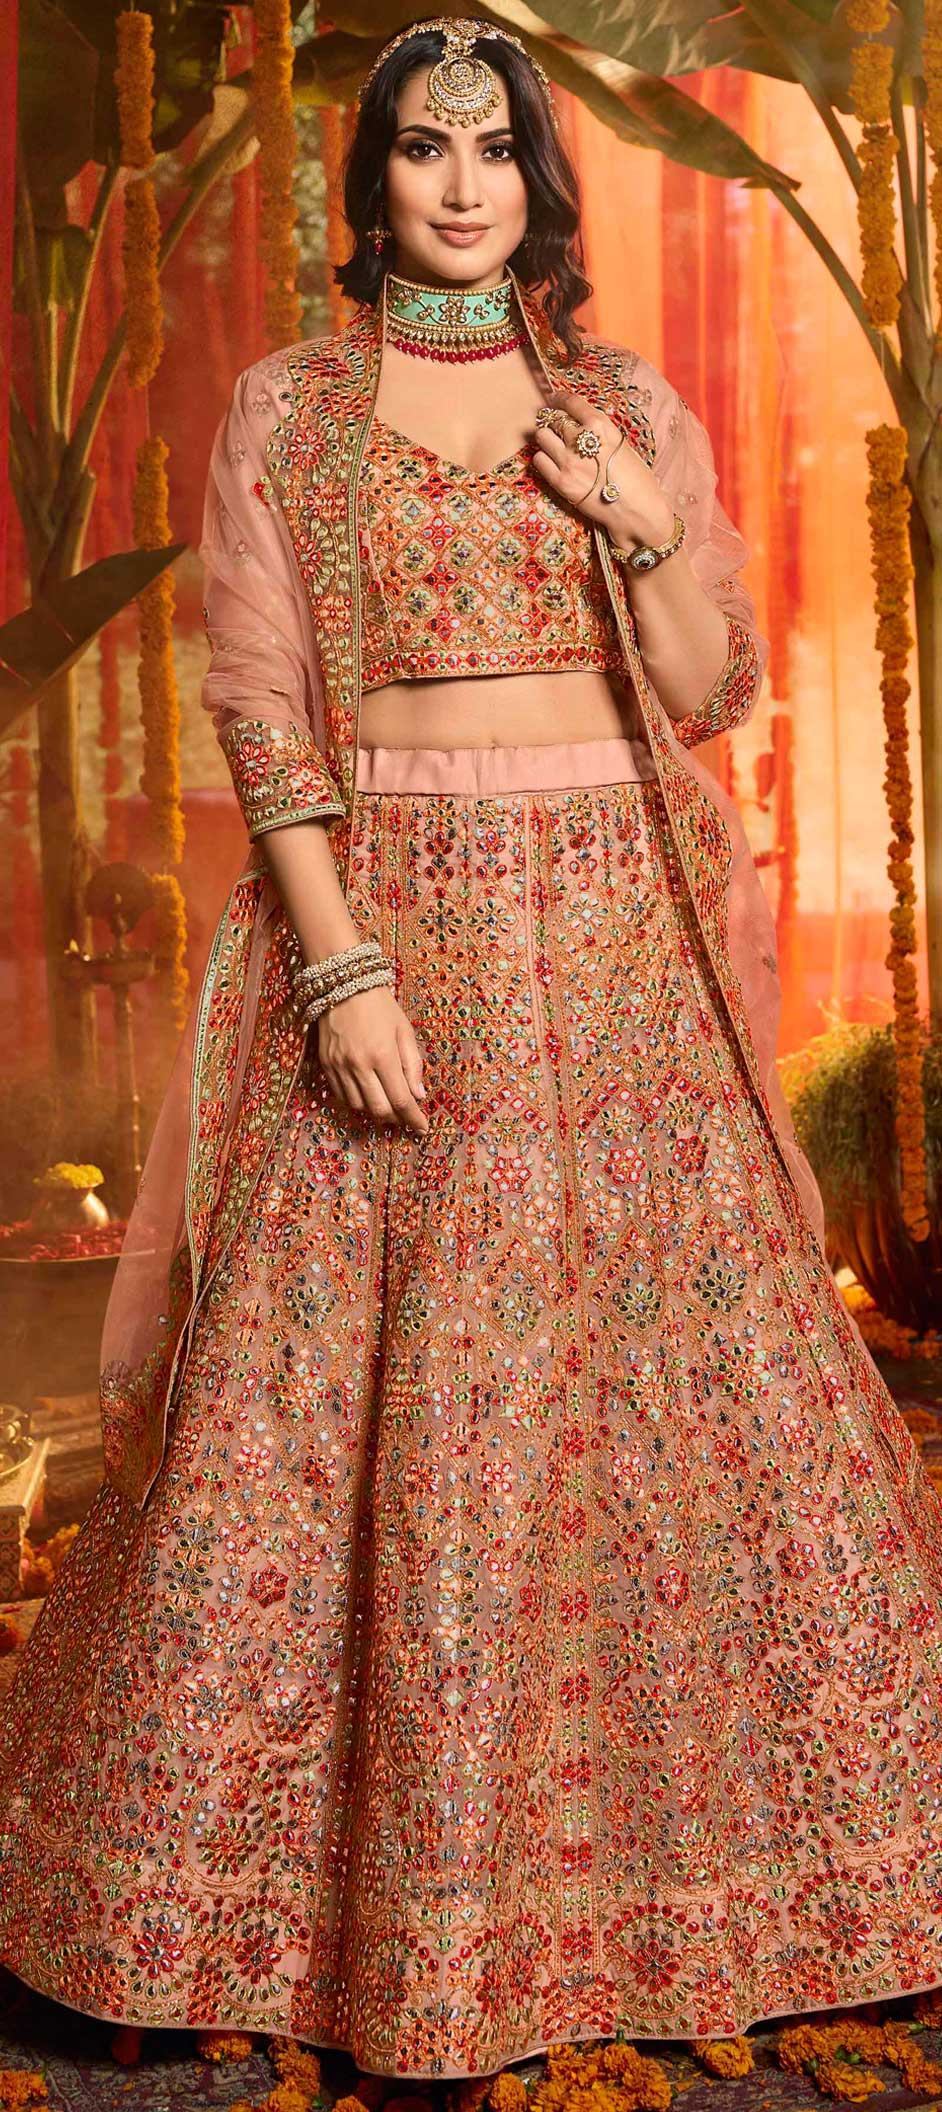 Printed Bridal Lehengas for the Gorgeous Bride-To-Be